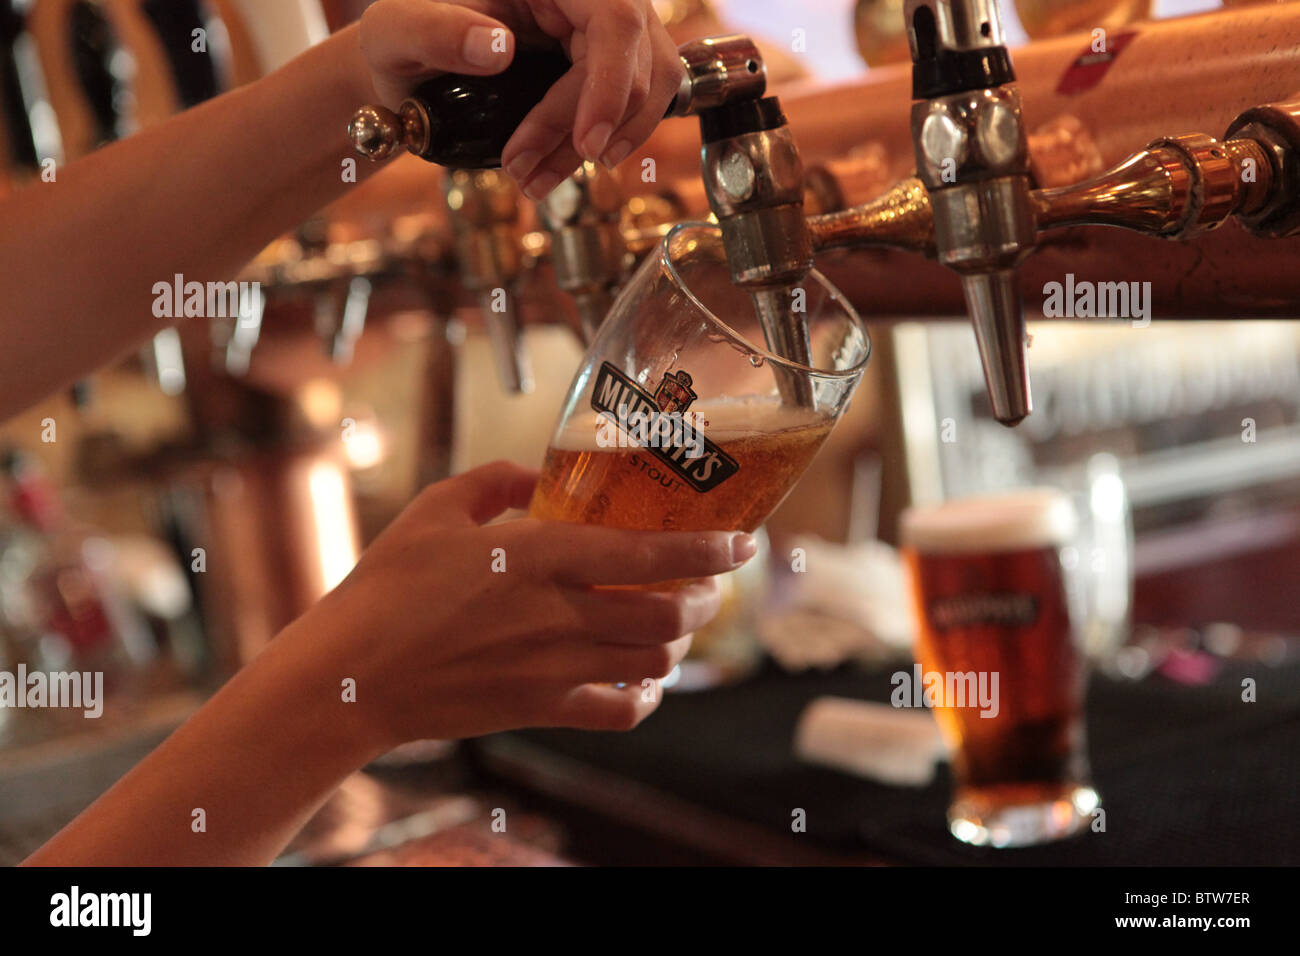 Draught Beer Tap Stock Photos & Draught Beer Tap Stock Images - Alamy